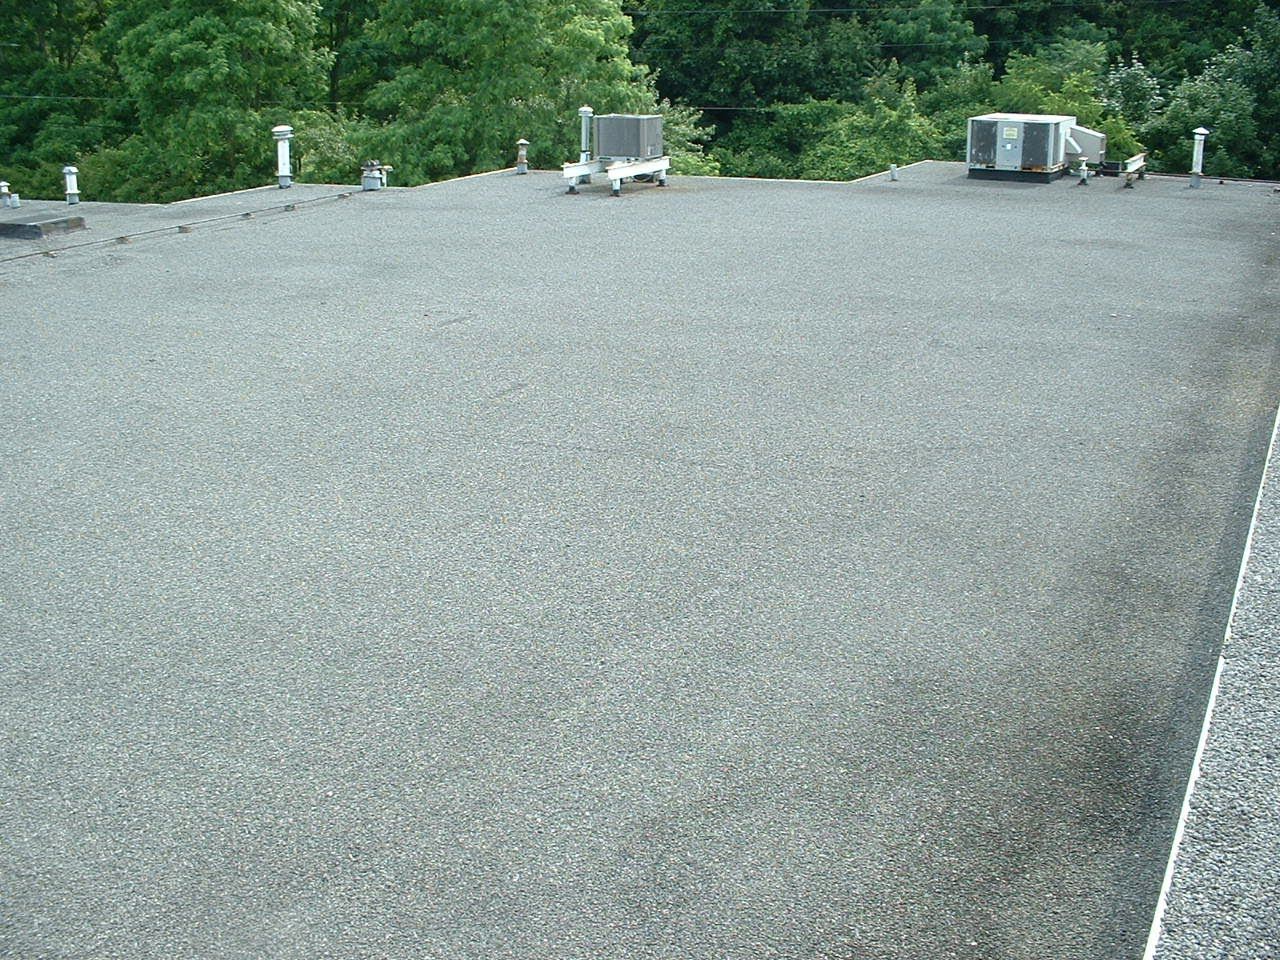 New 4 Ply Asphalt And Gravel Manville Total Roof System By Atlas Roofing  Company Inc